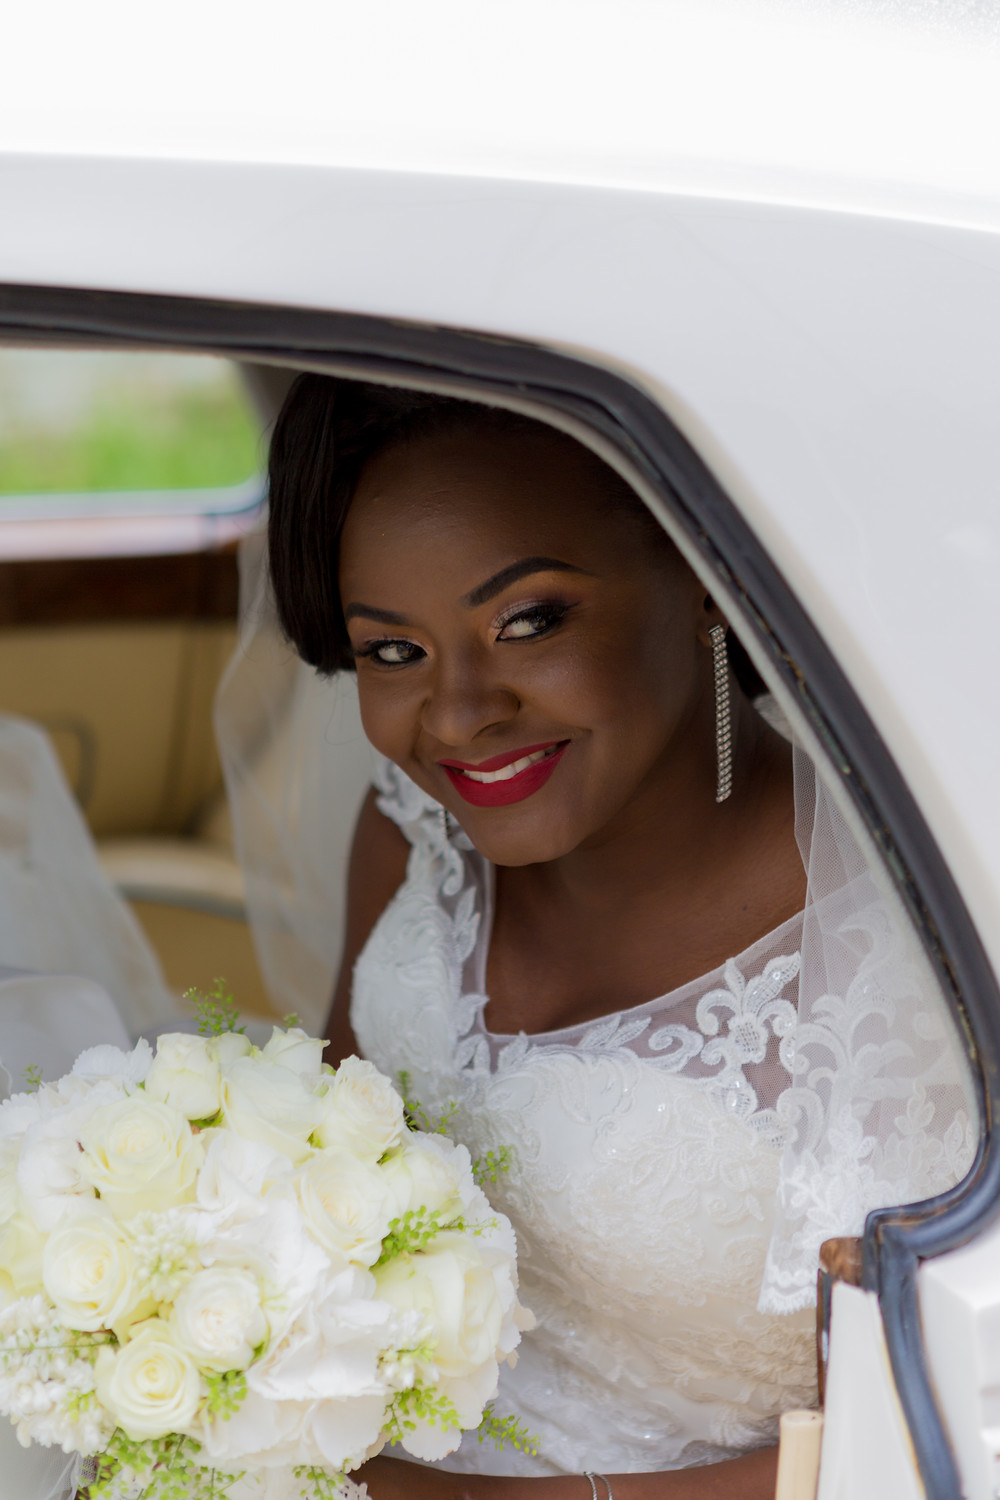 Beautiful Bride in her wedding day car arriving at the church.